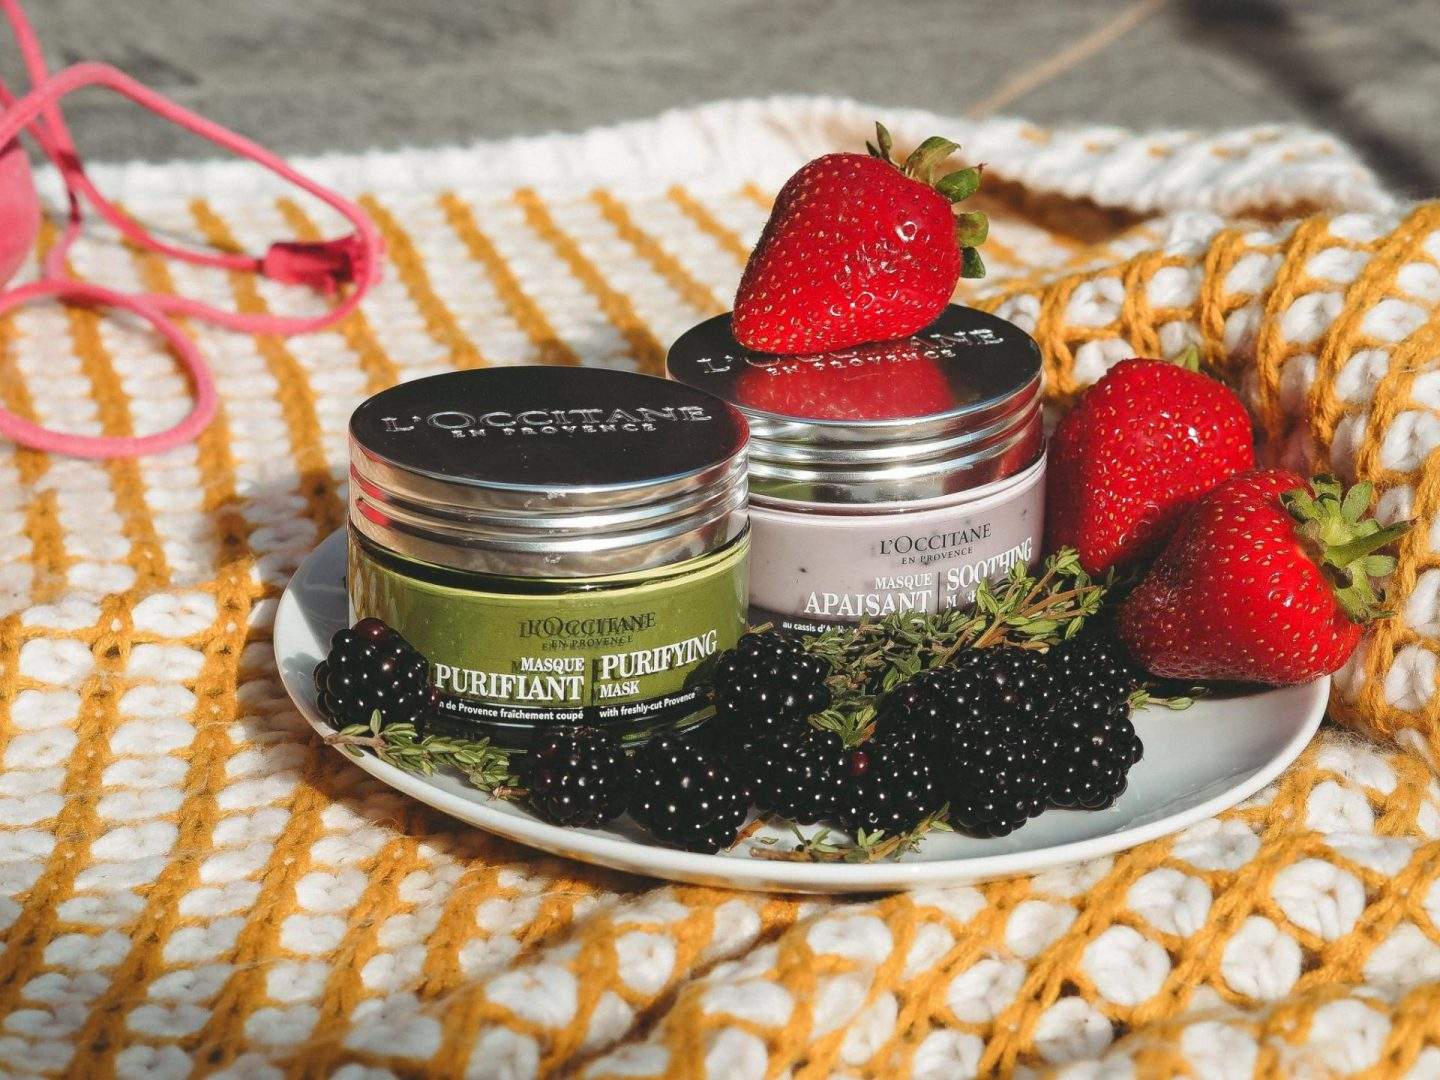 Enjoy a fruity beauty injection with L'Occitane